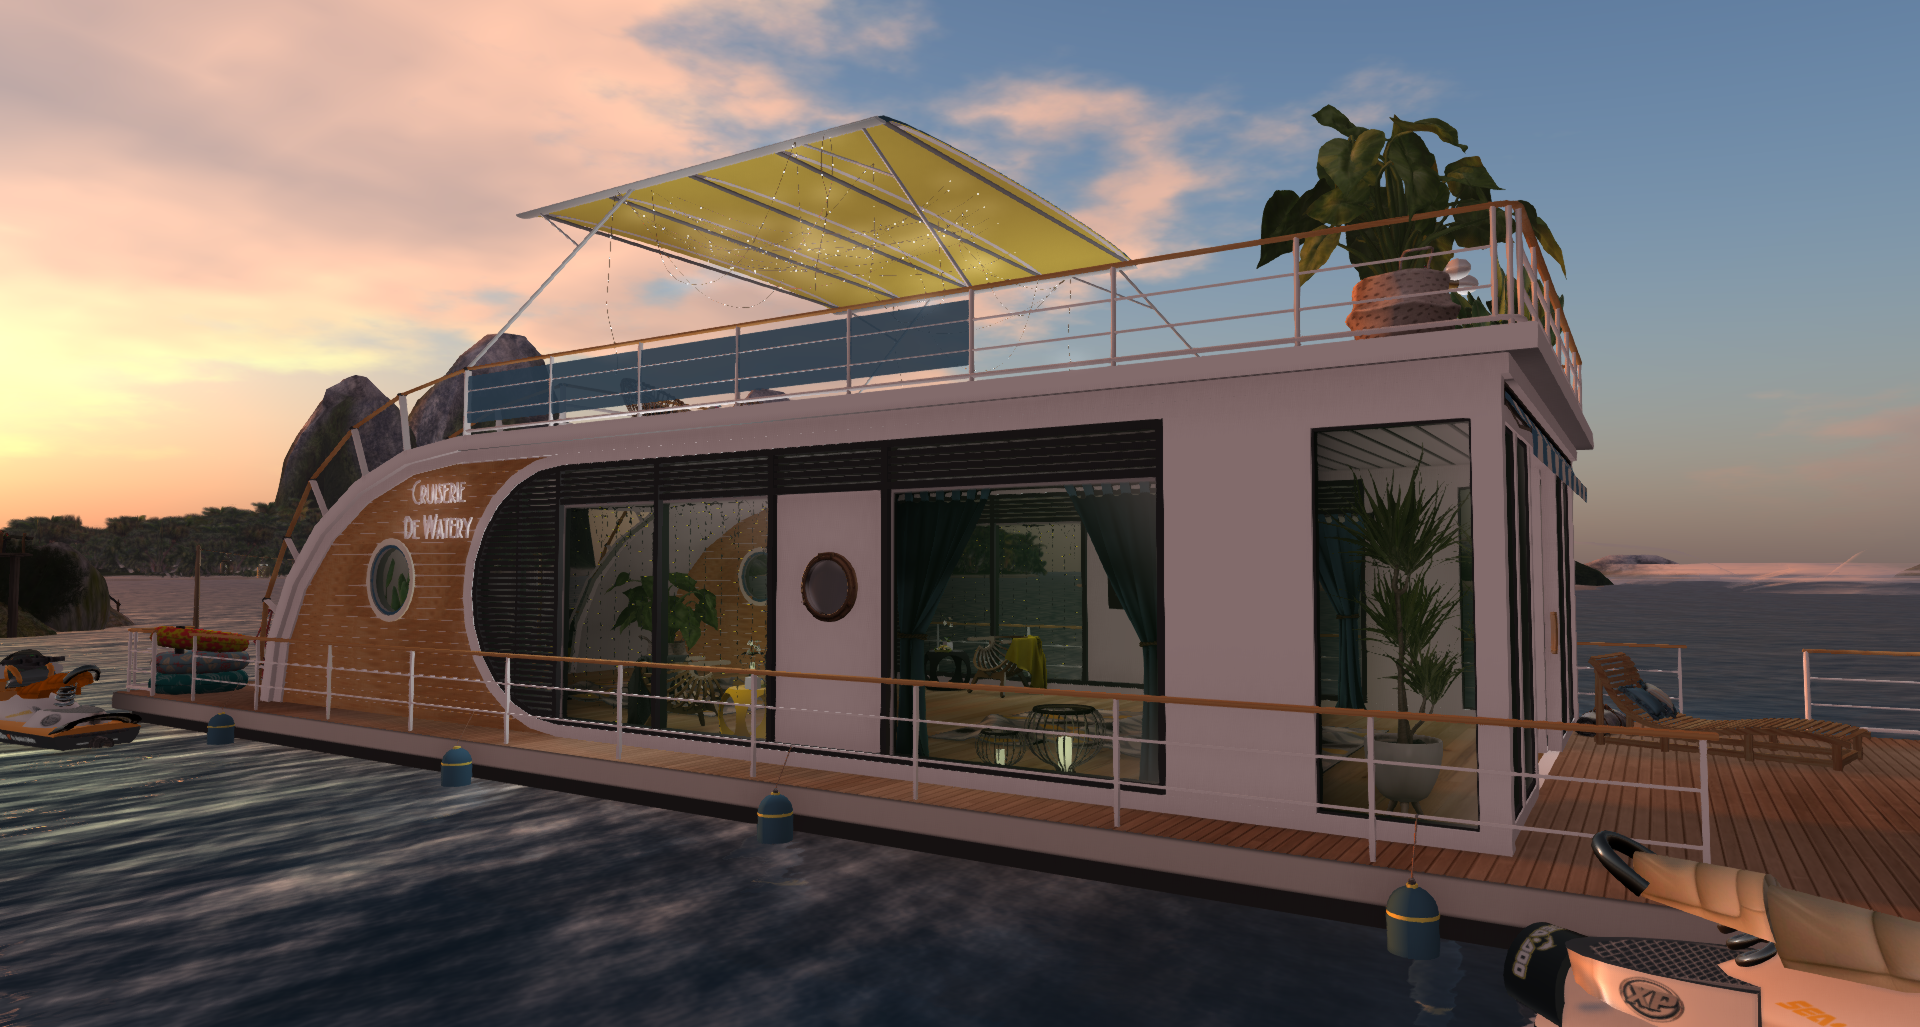 Cruiserie de Watery boat side_001.png